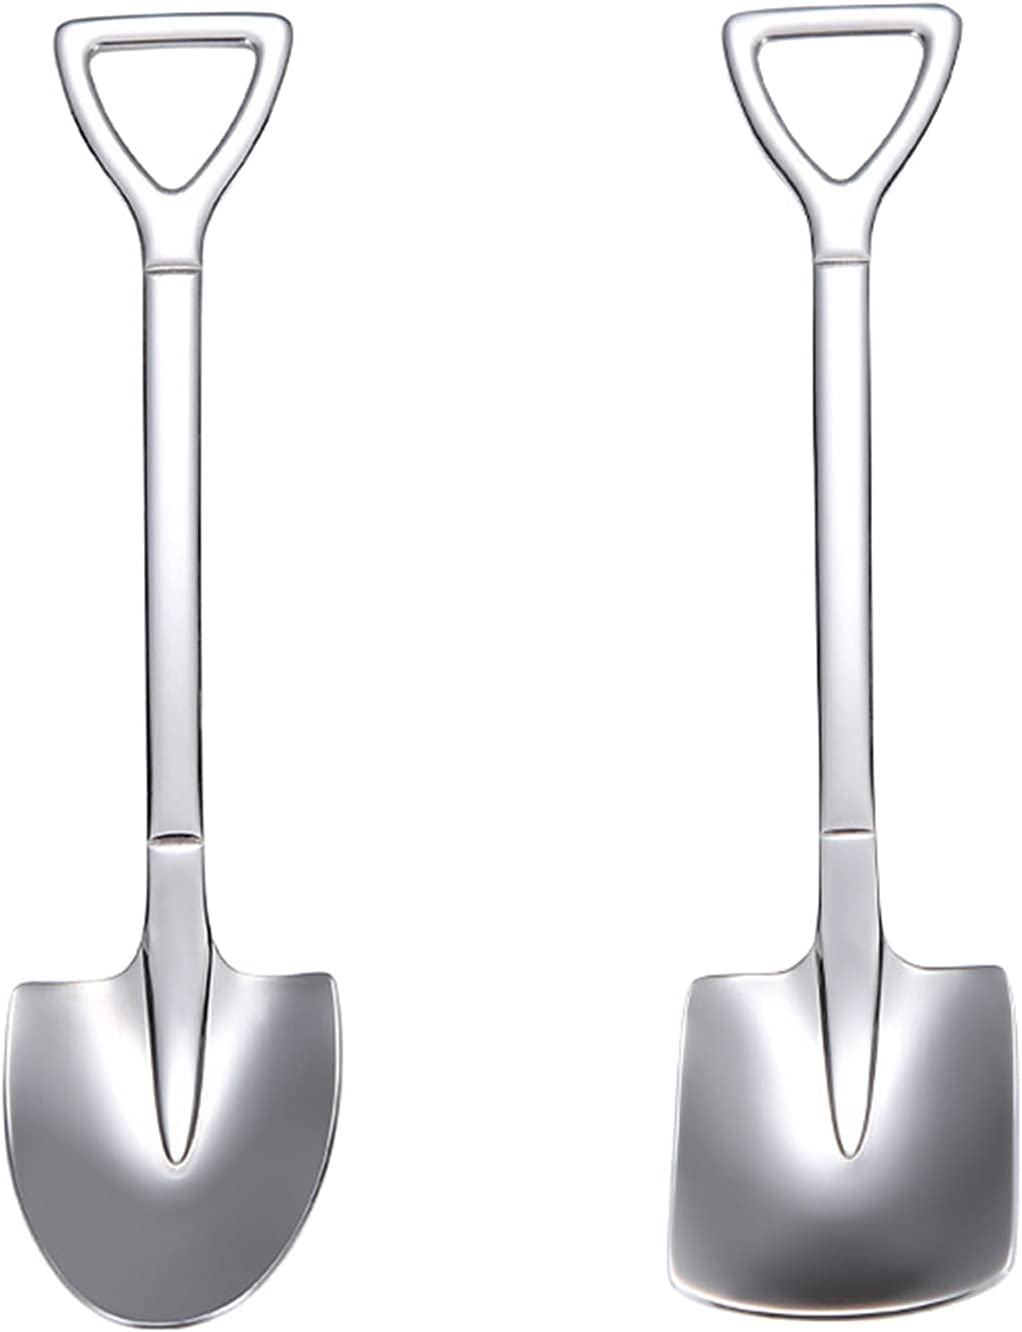 Tablespoons Soup Spoon Dinner Set 2 Max 69% OFF Steel S Stainless Lowest price challenge Pack